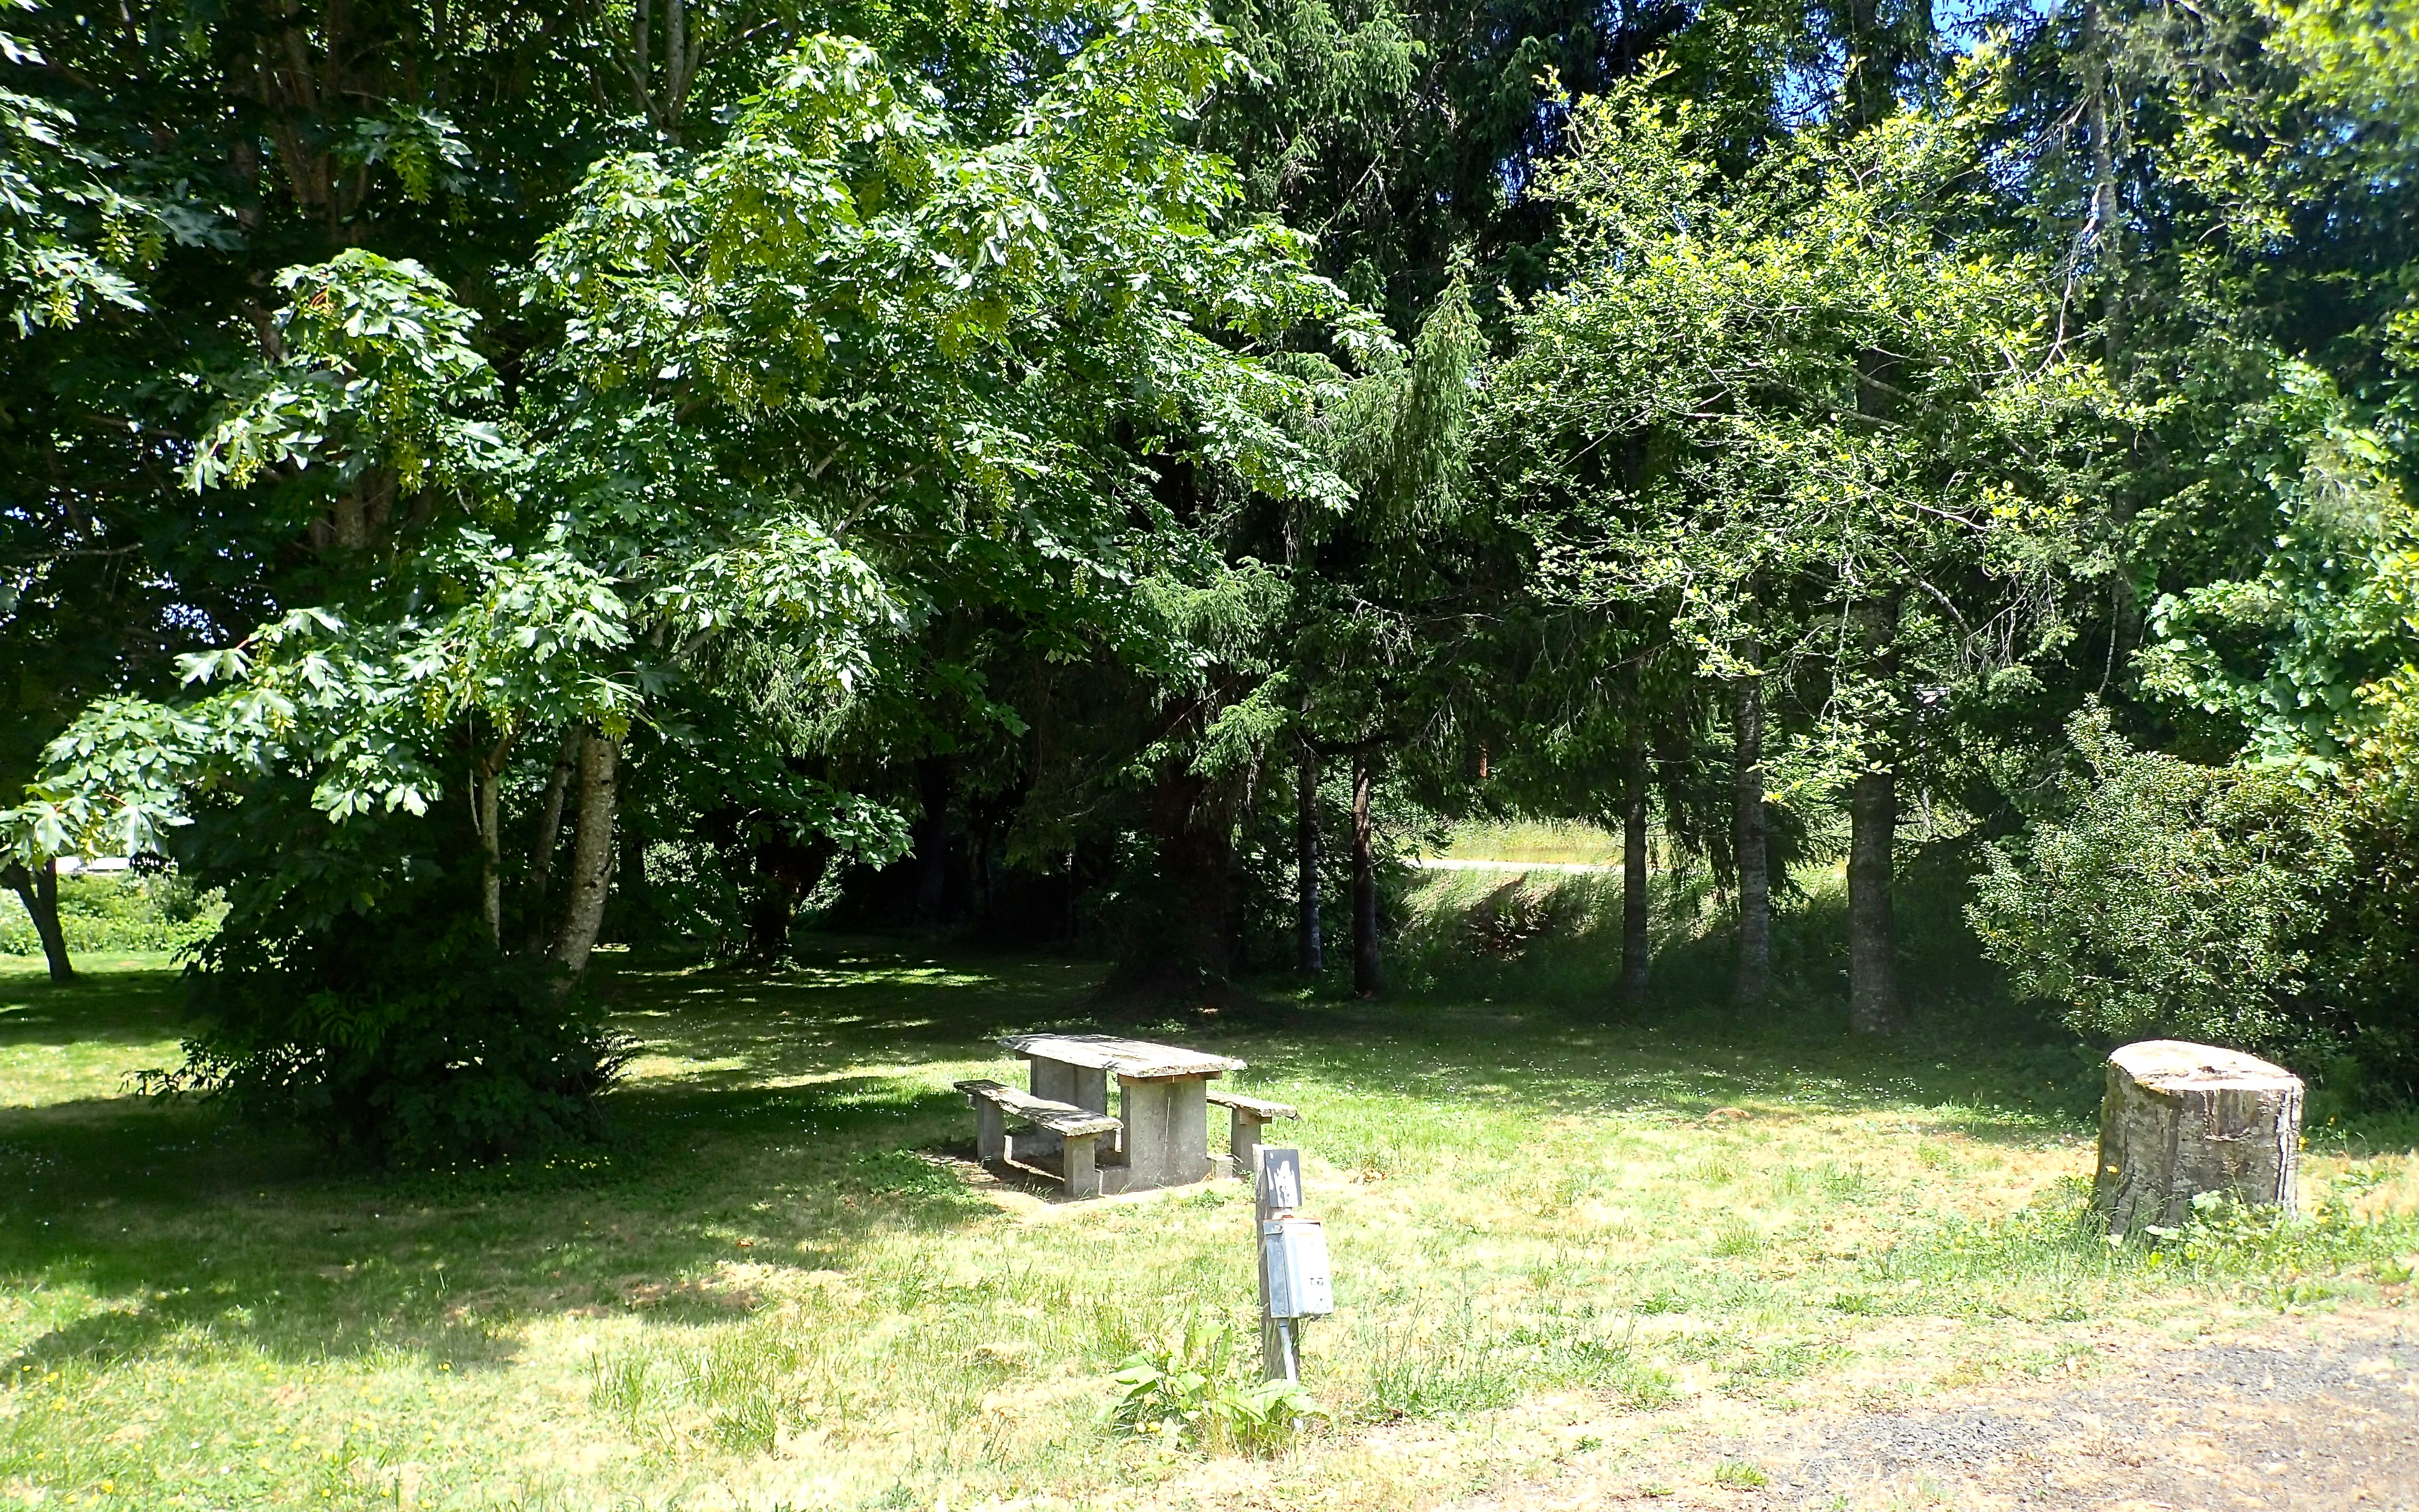 Many treed campsites are available!